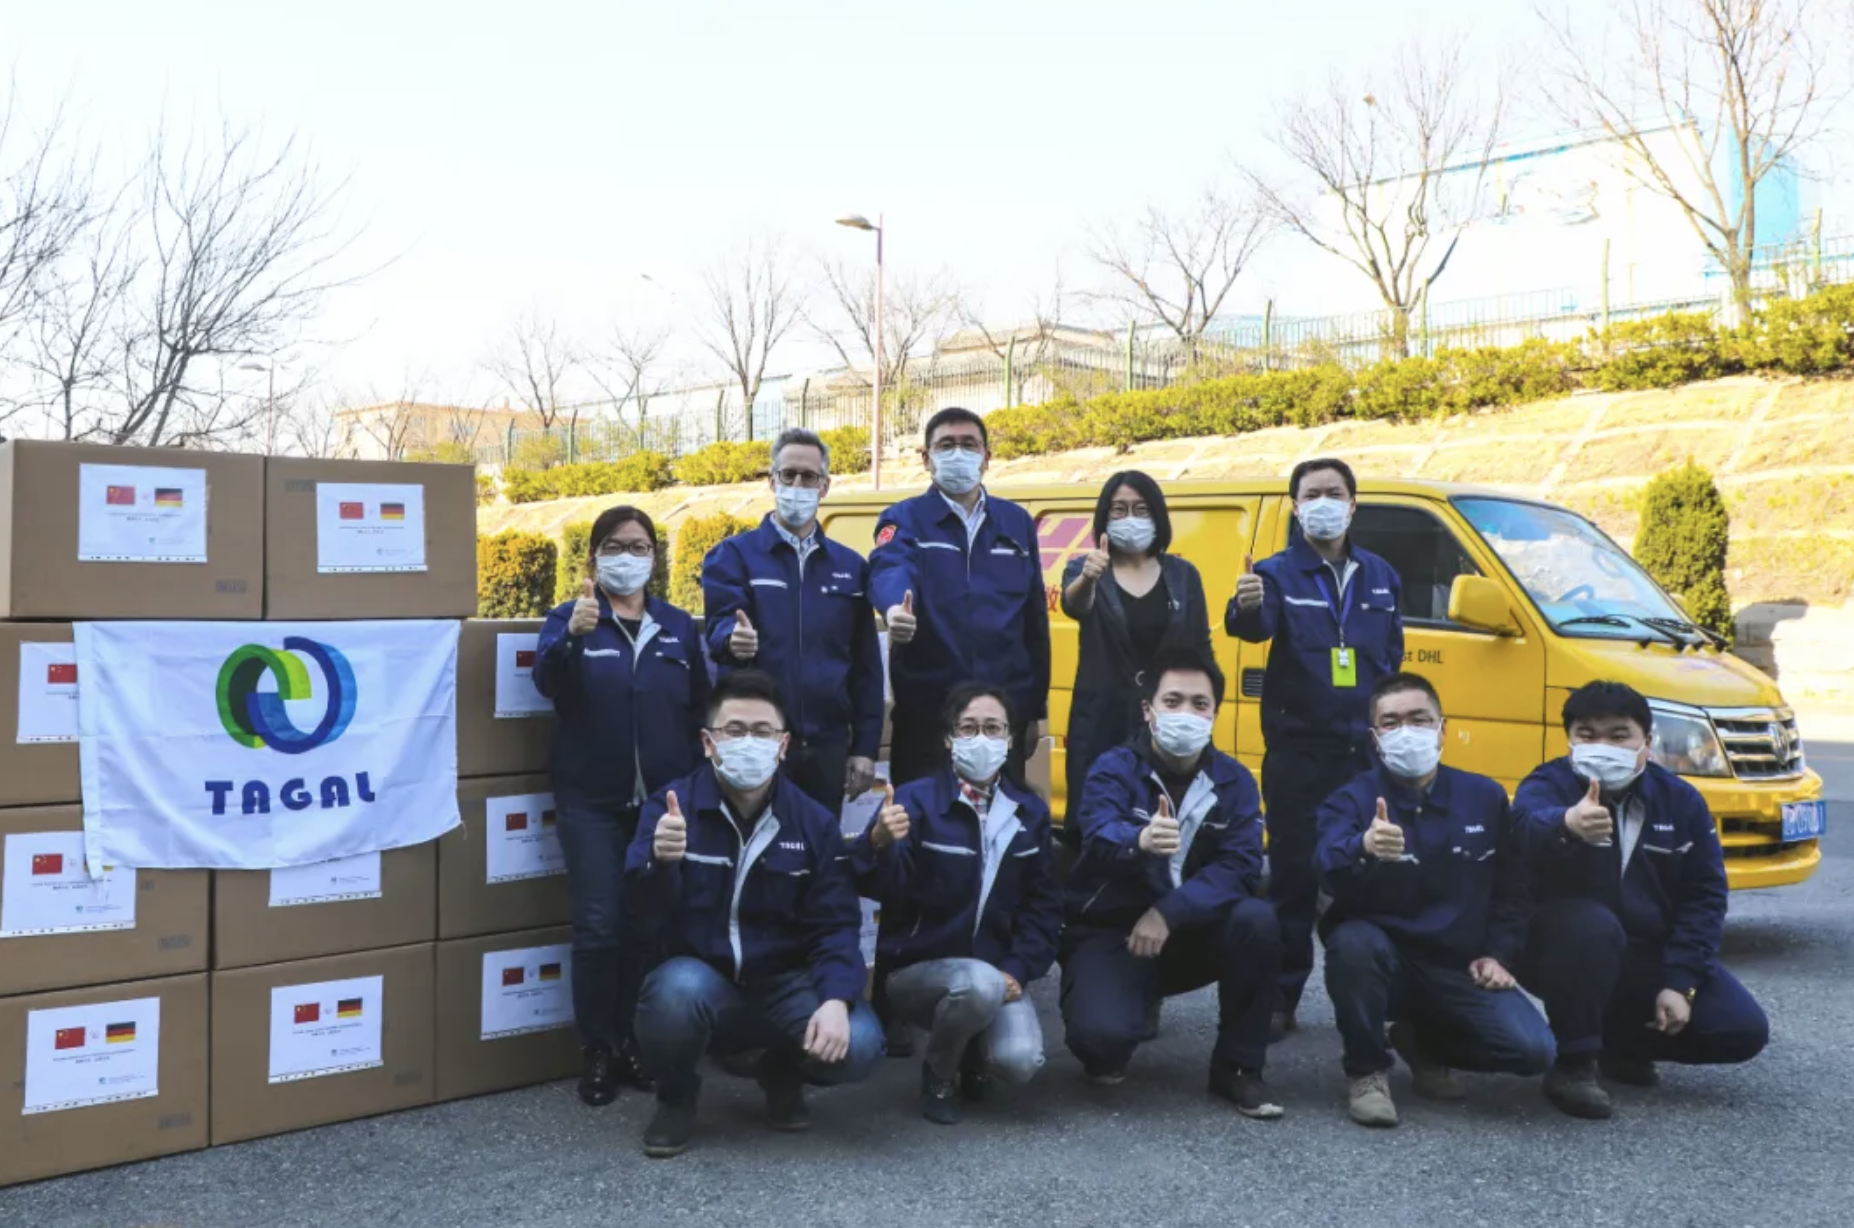 The management of TAGAL from China observed the development of Corona in Germany and decided without further ado to launch the donation campaign.